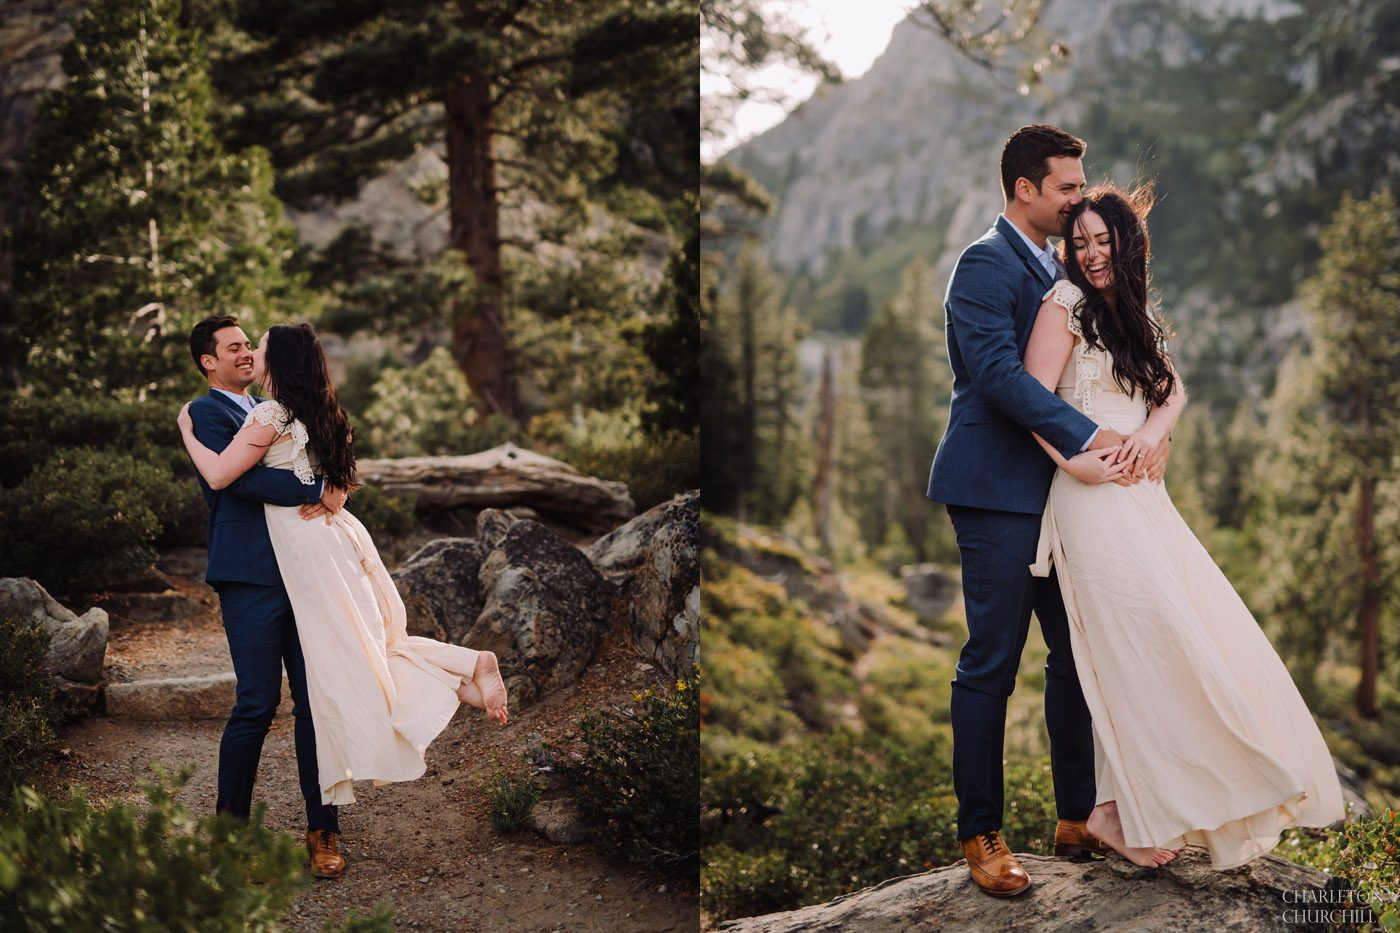 fun natural candid engagement photos in the mountains adventure style with trees and dirt